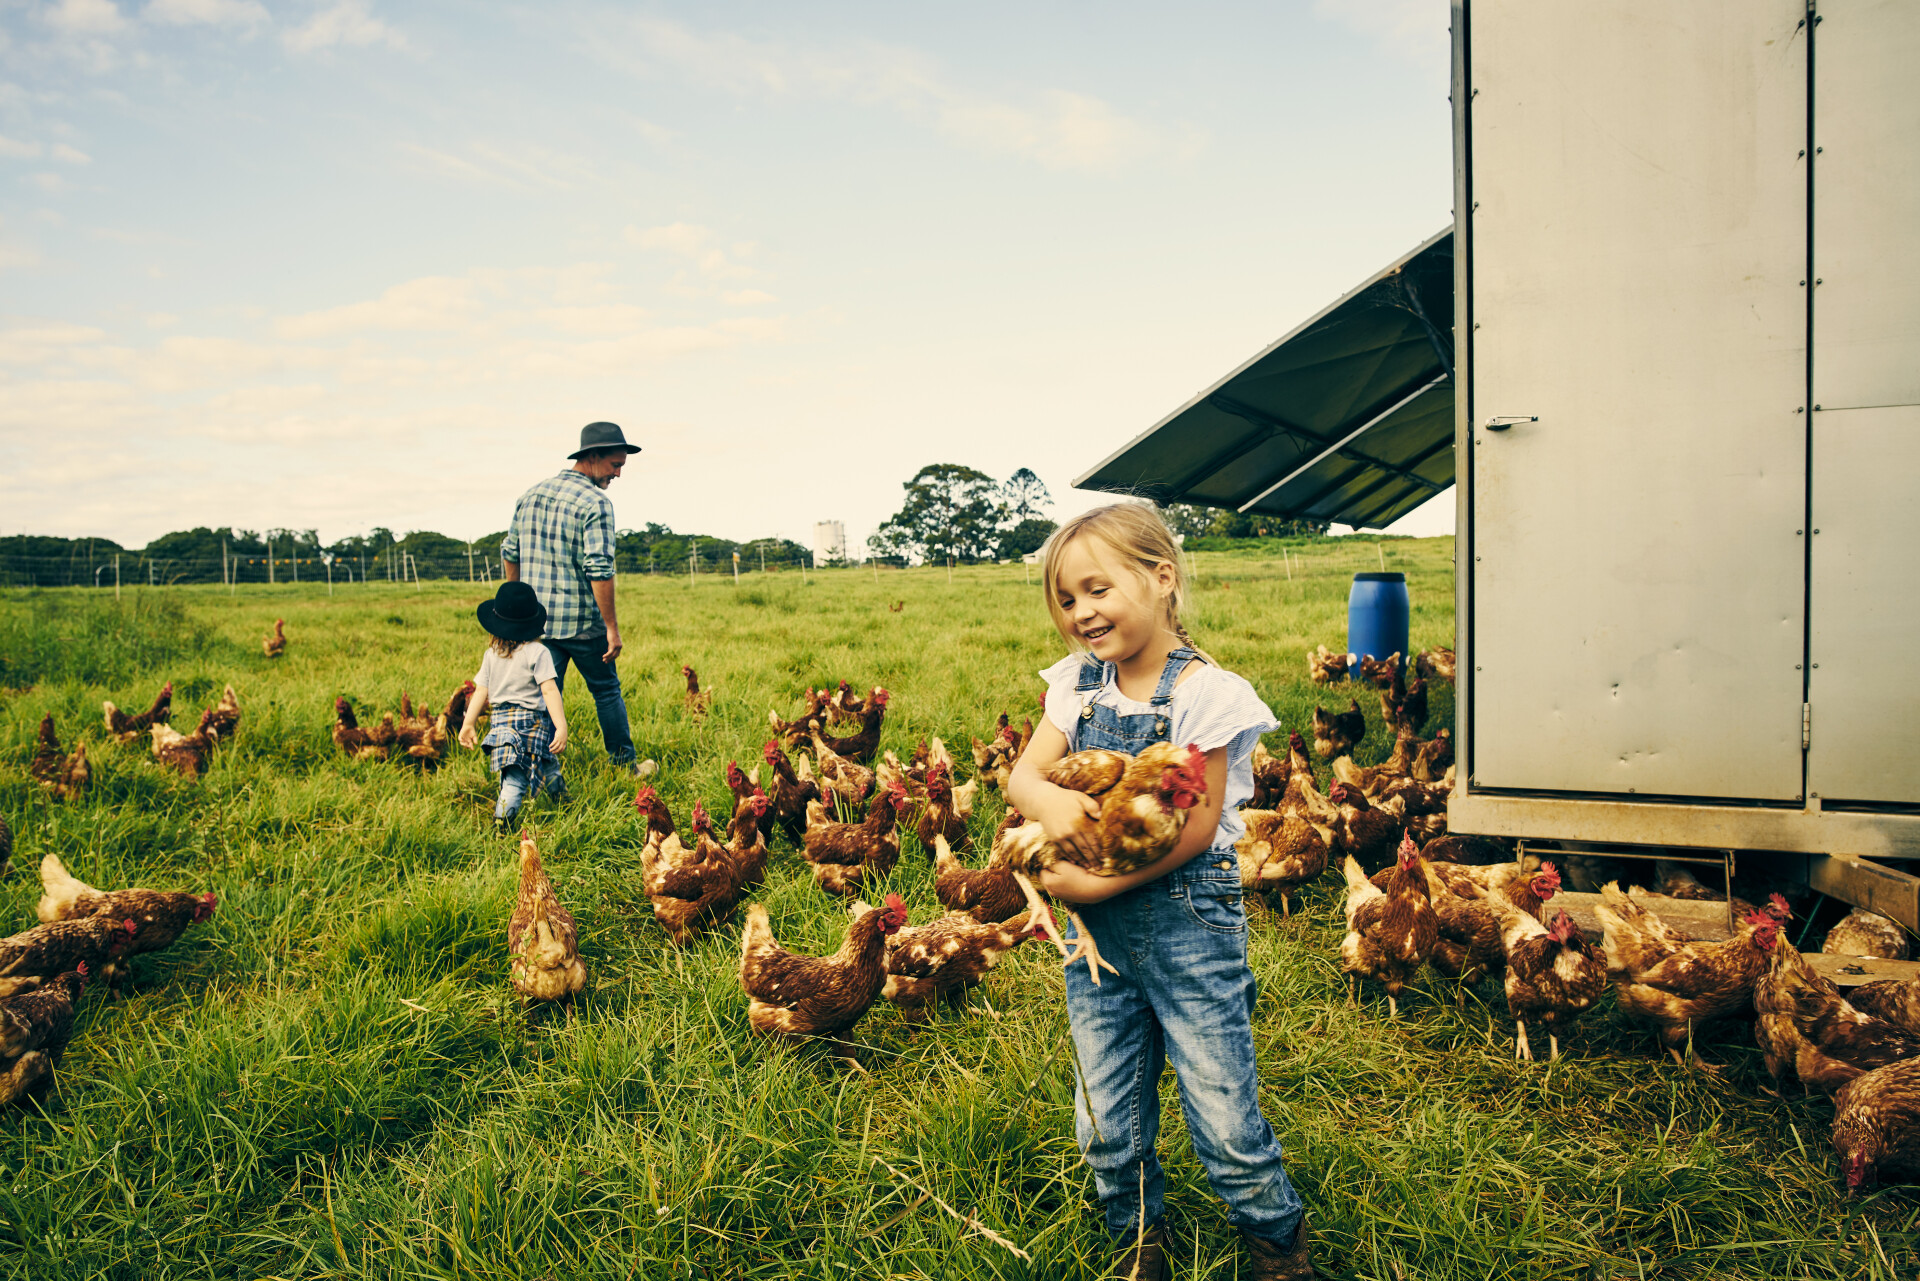 A young girl hugs a chicken while standing in a pasture surrounded by free range chickens